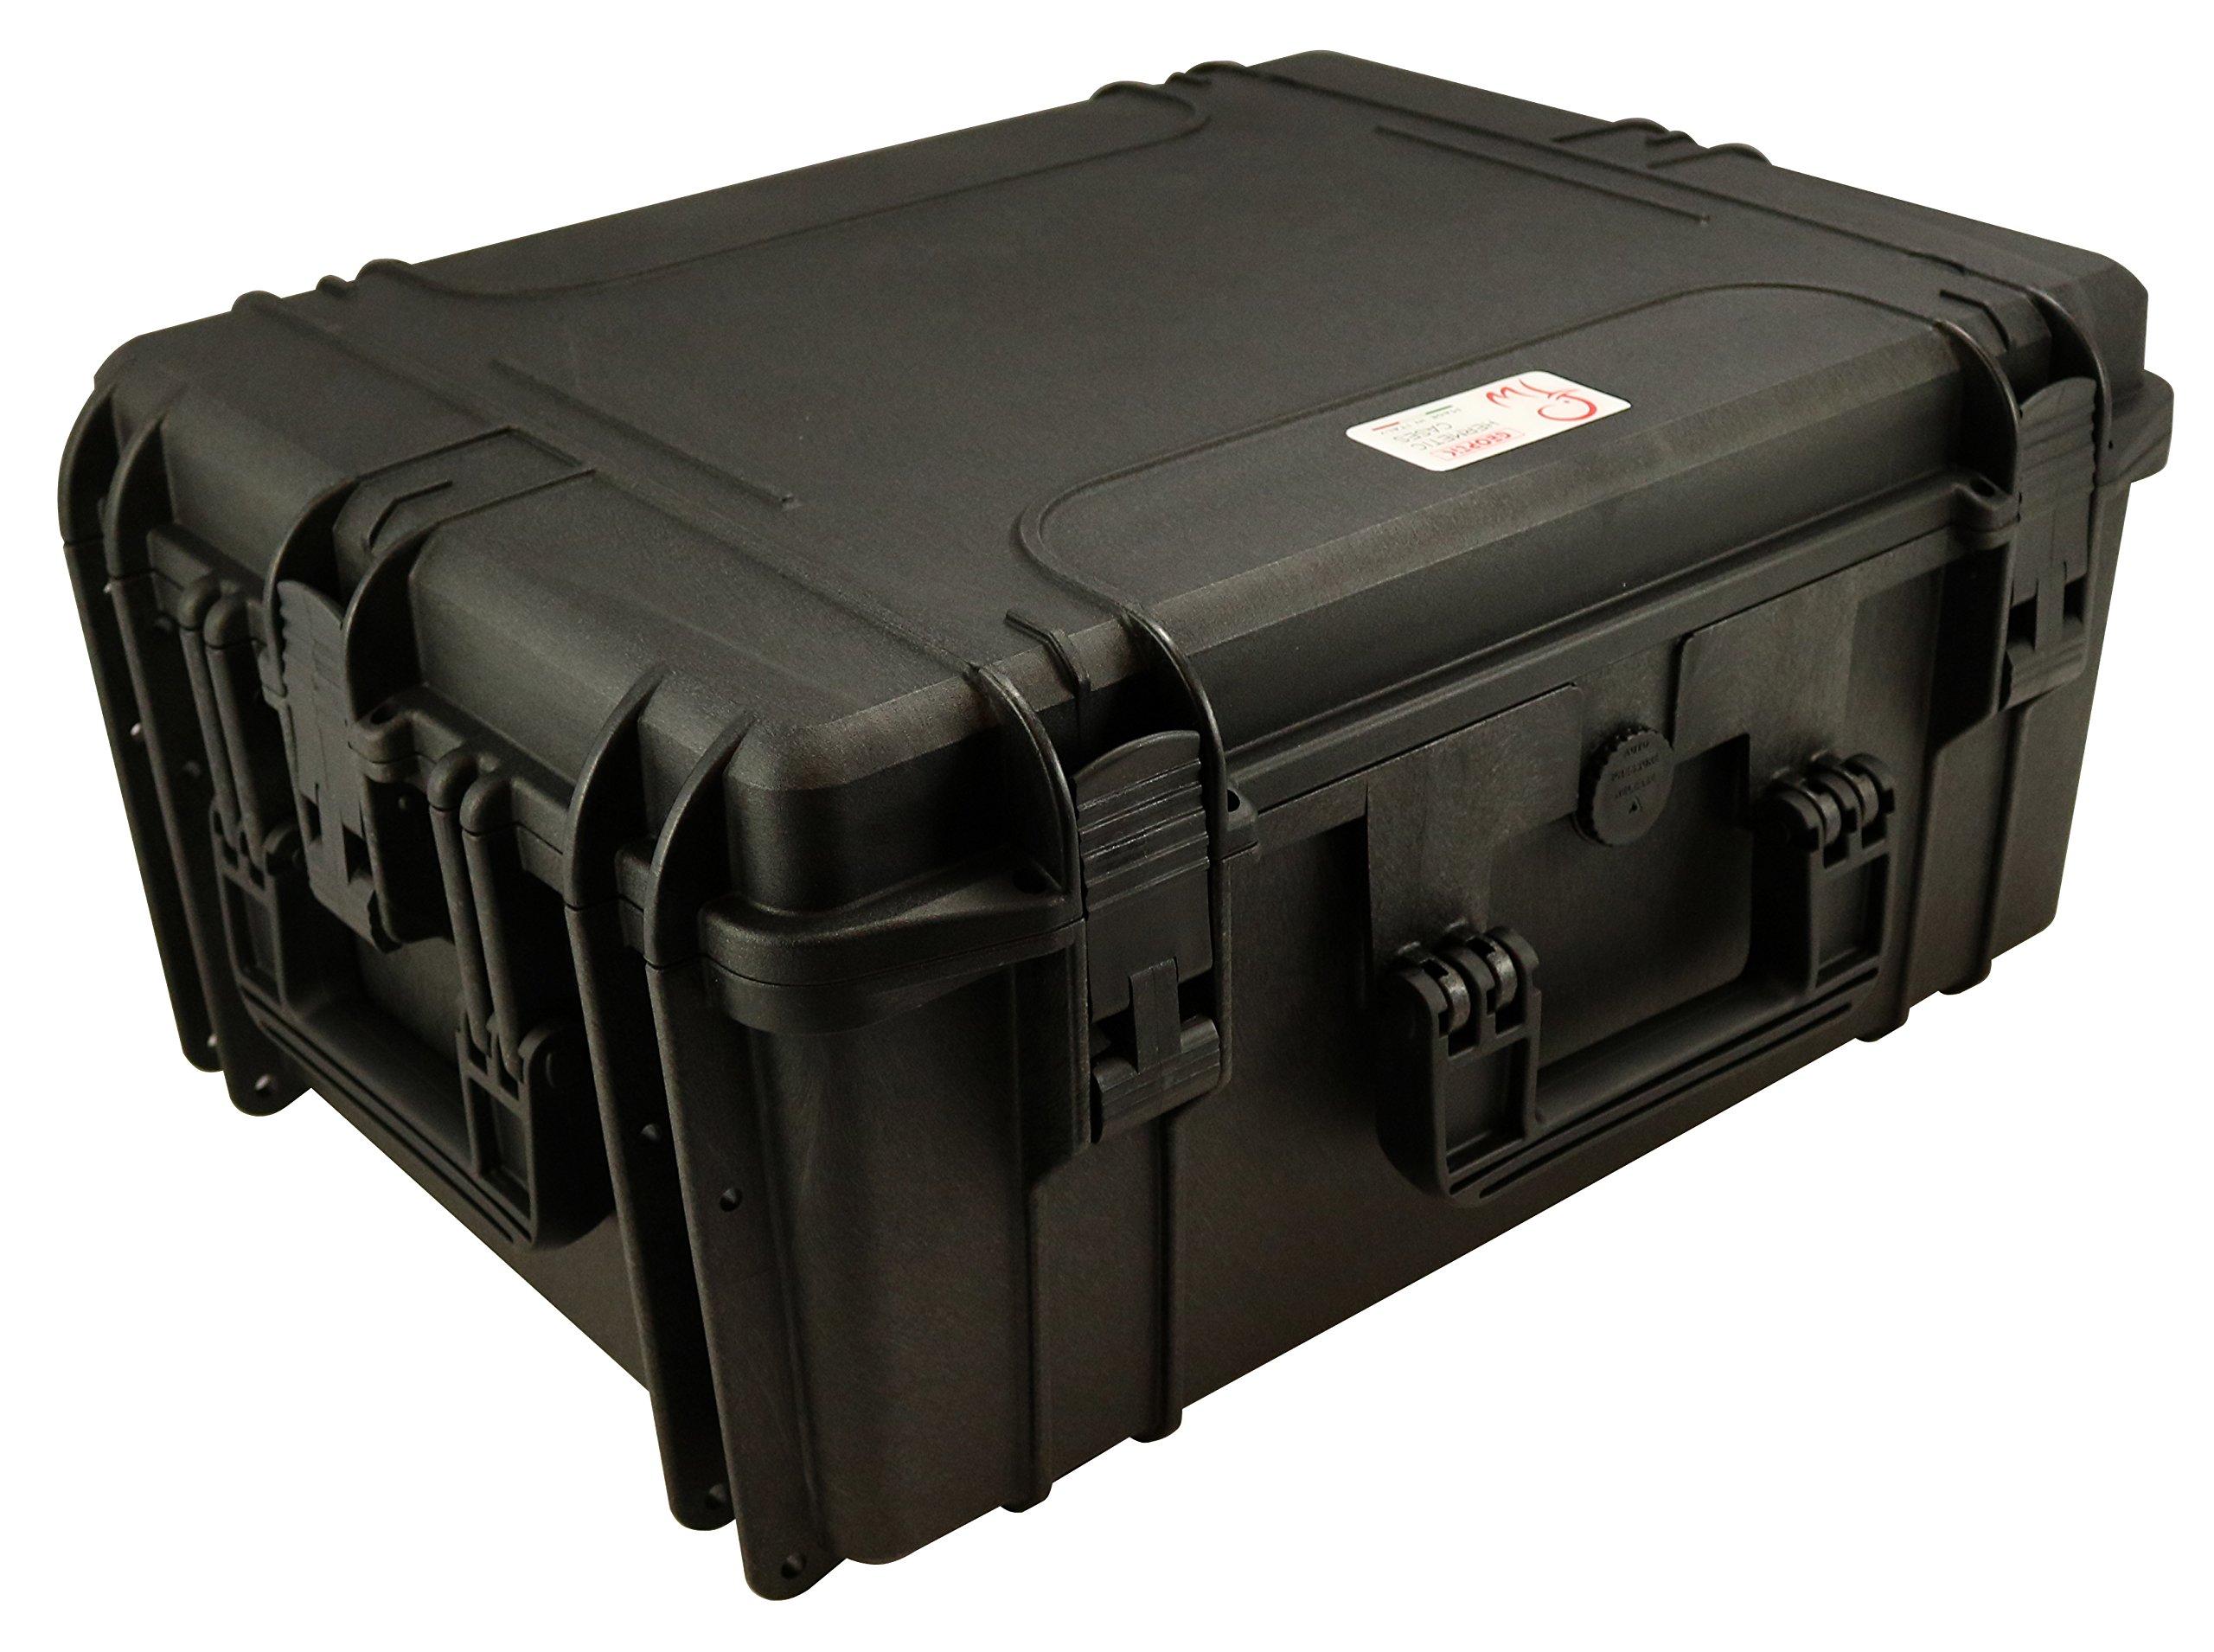 Hermetic airtight 30B059 Luggage Bag by Geoptik